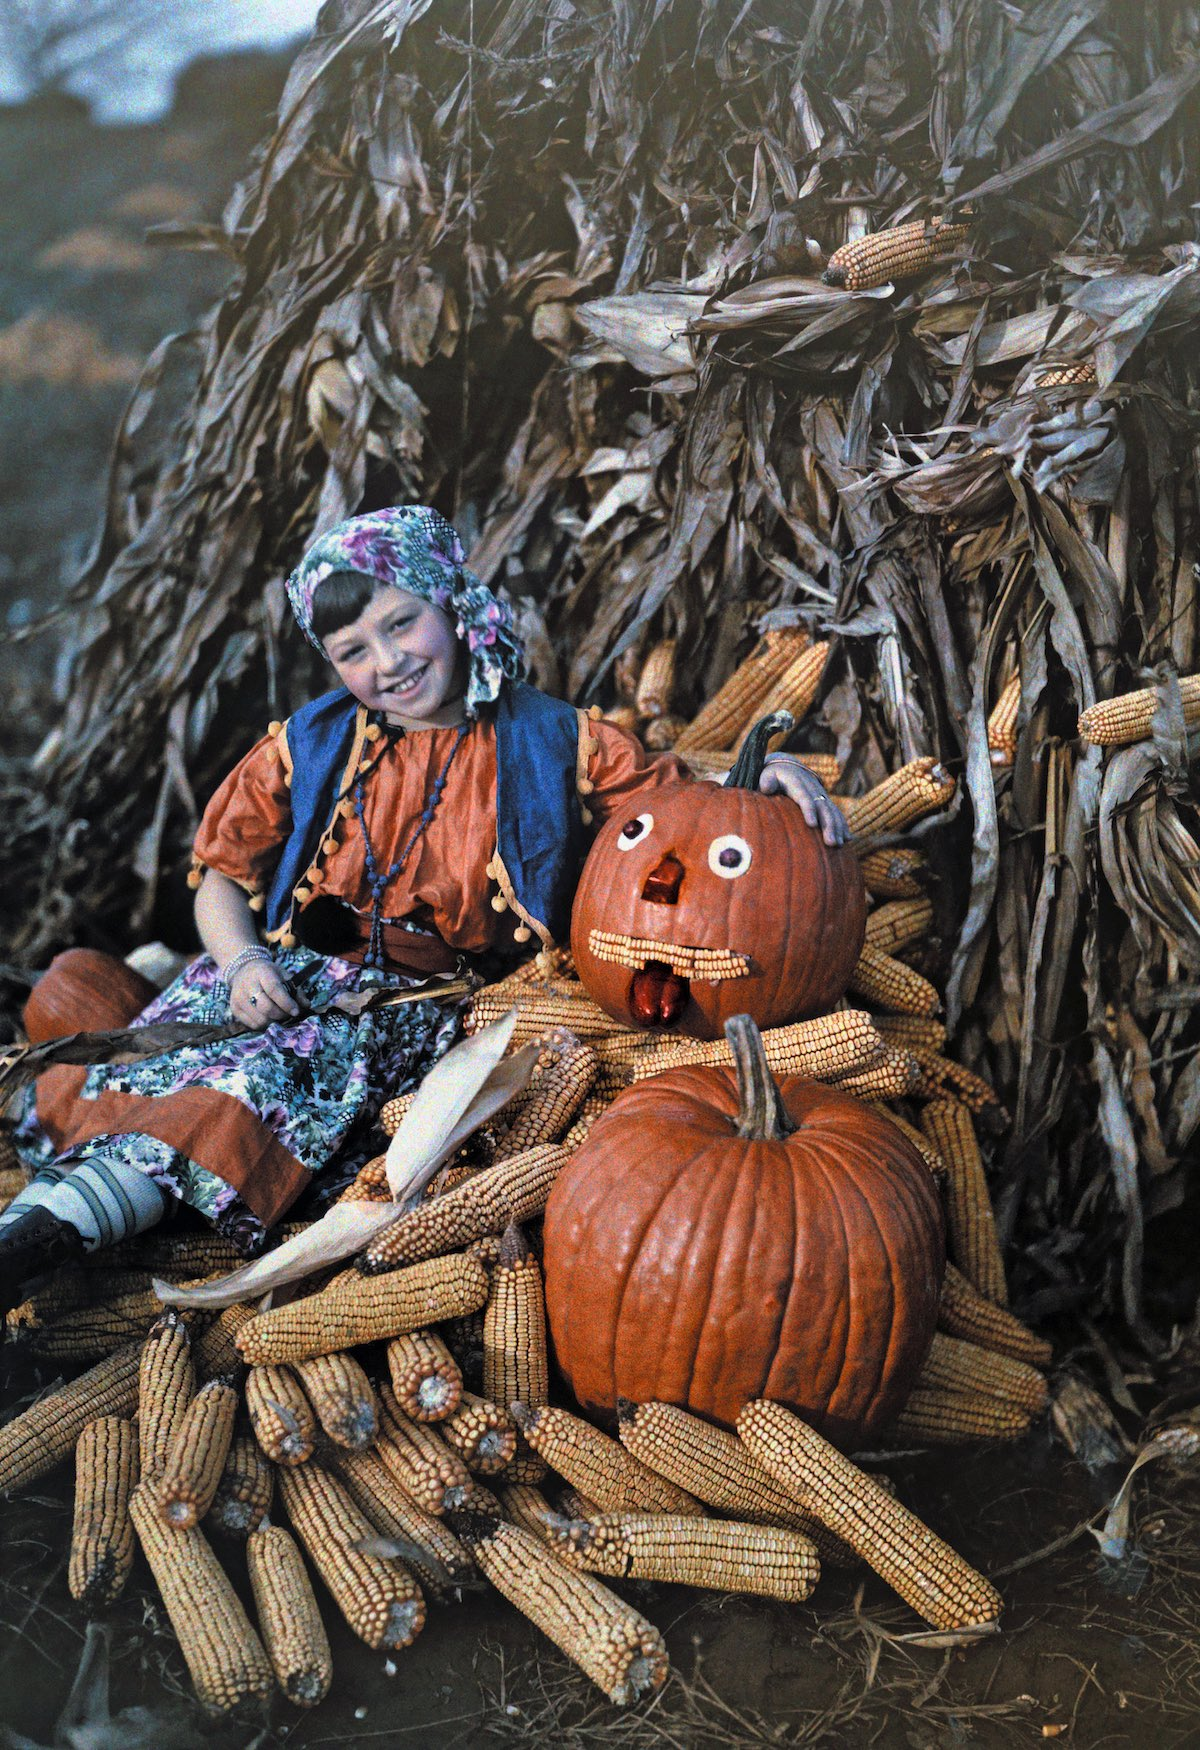 Virginia - A girl poses with corncobs and pumpkins during the harvest